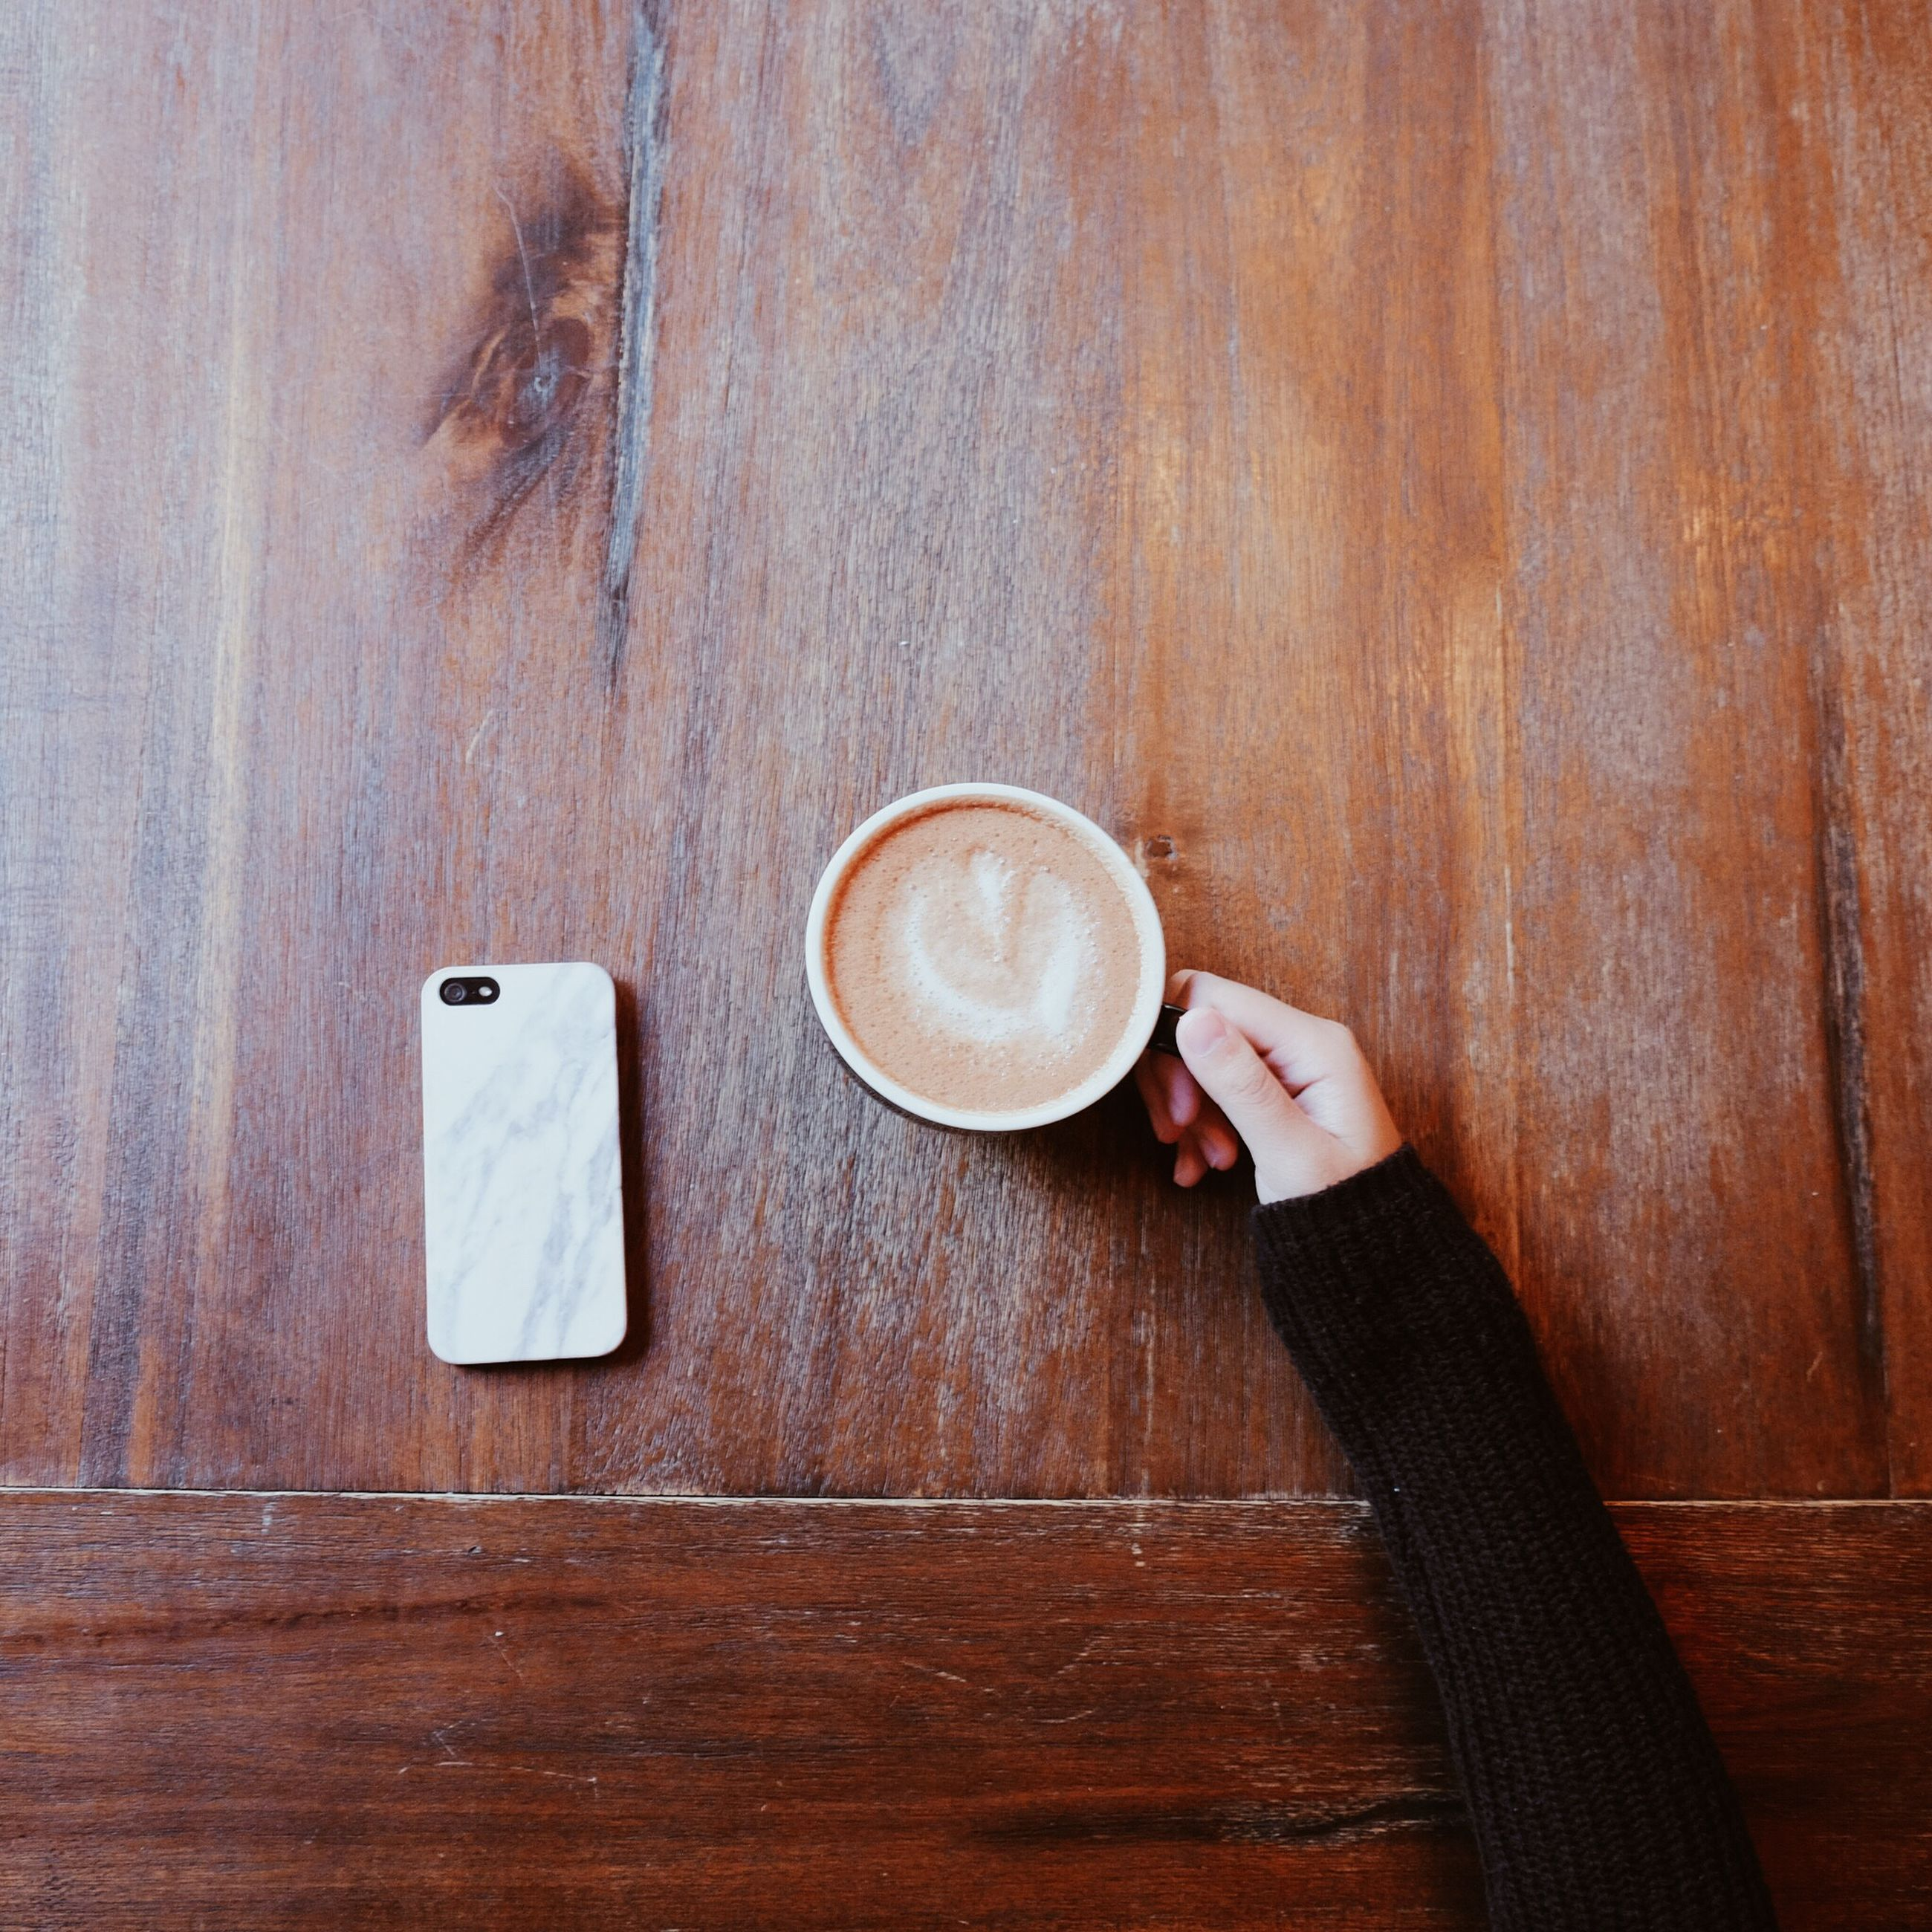 indoors, person, holding, close-up, part of, table, circle, wood - material, refreshment, drink, food and drink, coffee cup, directly above, still life, cropped, lifestyles, high angle view